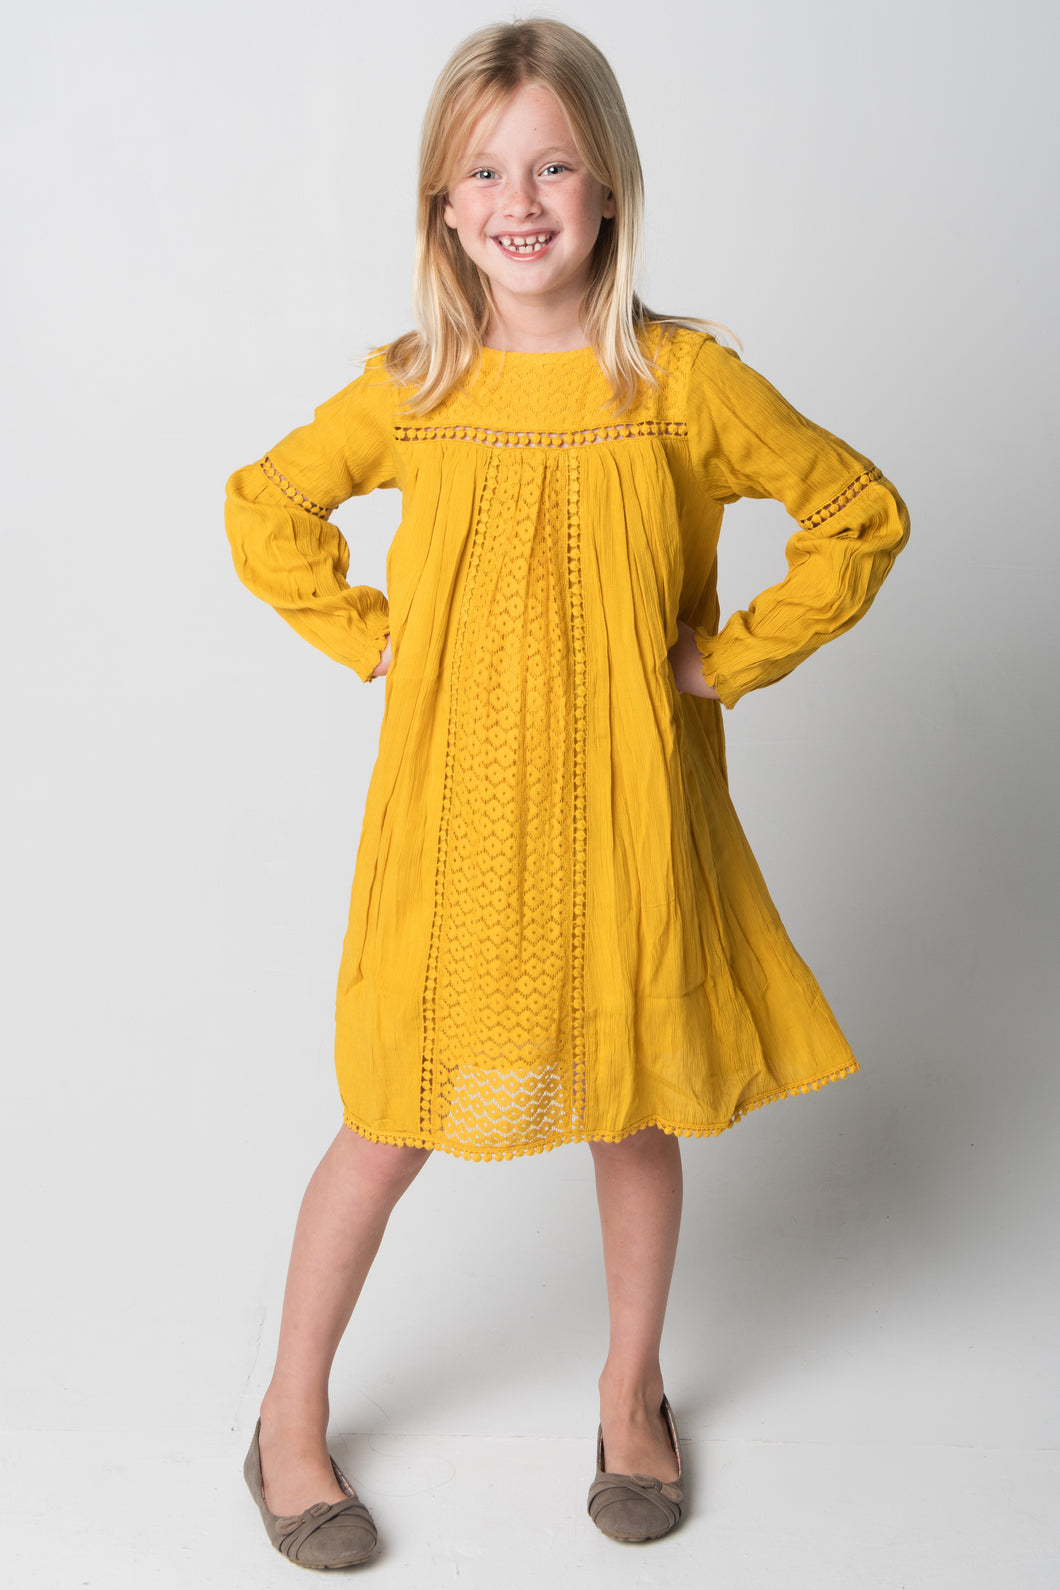 Yellow Lace Detail Dress - Kids Wholesale Boutique Clothing, Dress - Girls Dresses, Yo Baby Wholesale - Yo Baby